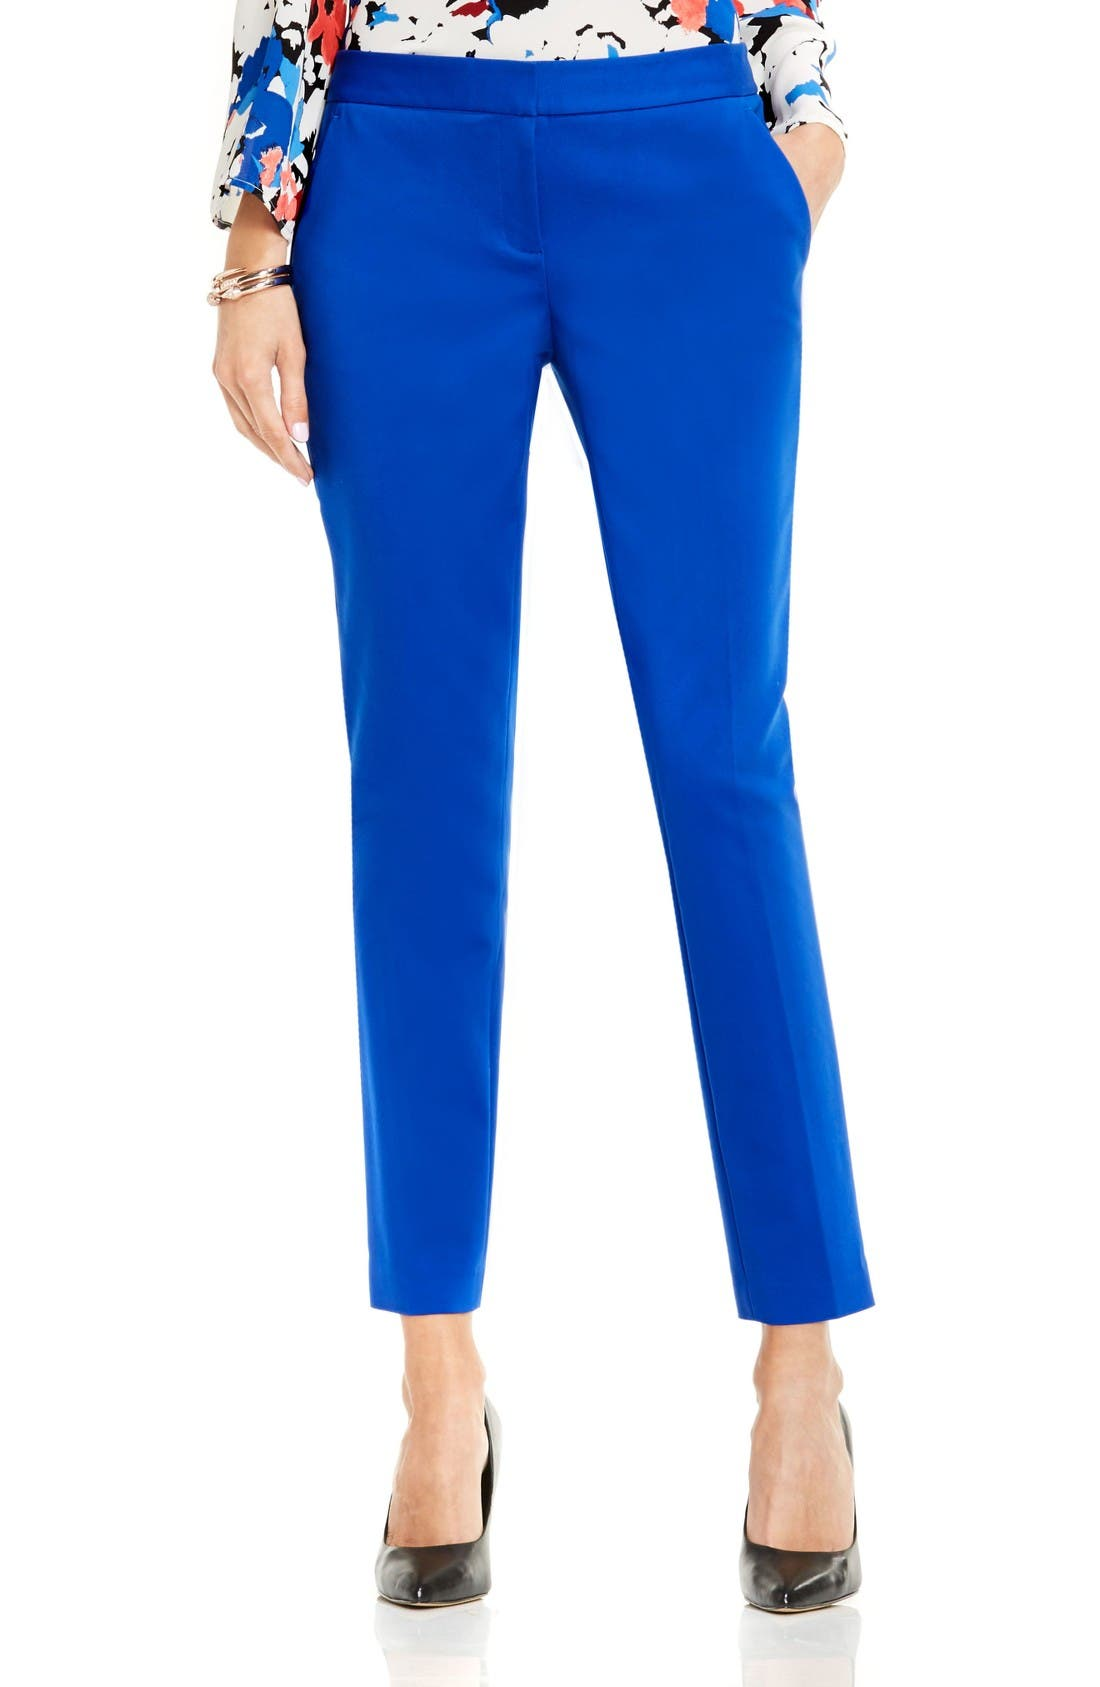 Main Image - Vince Camuto Stretch Slim Ankle Pants